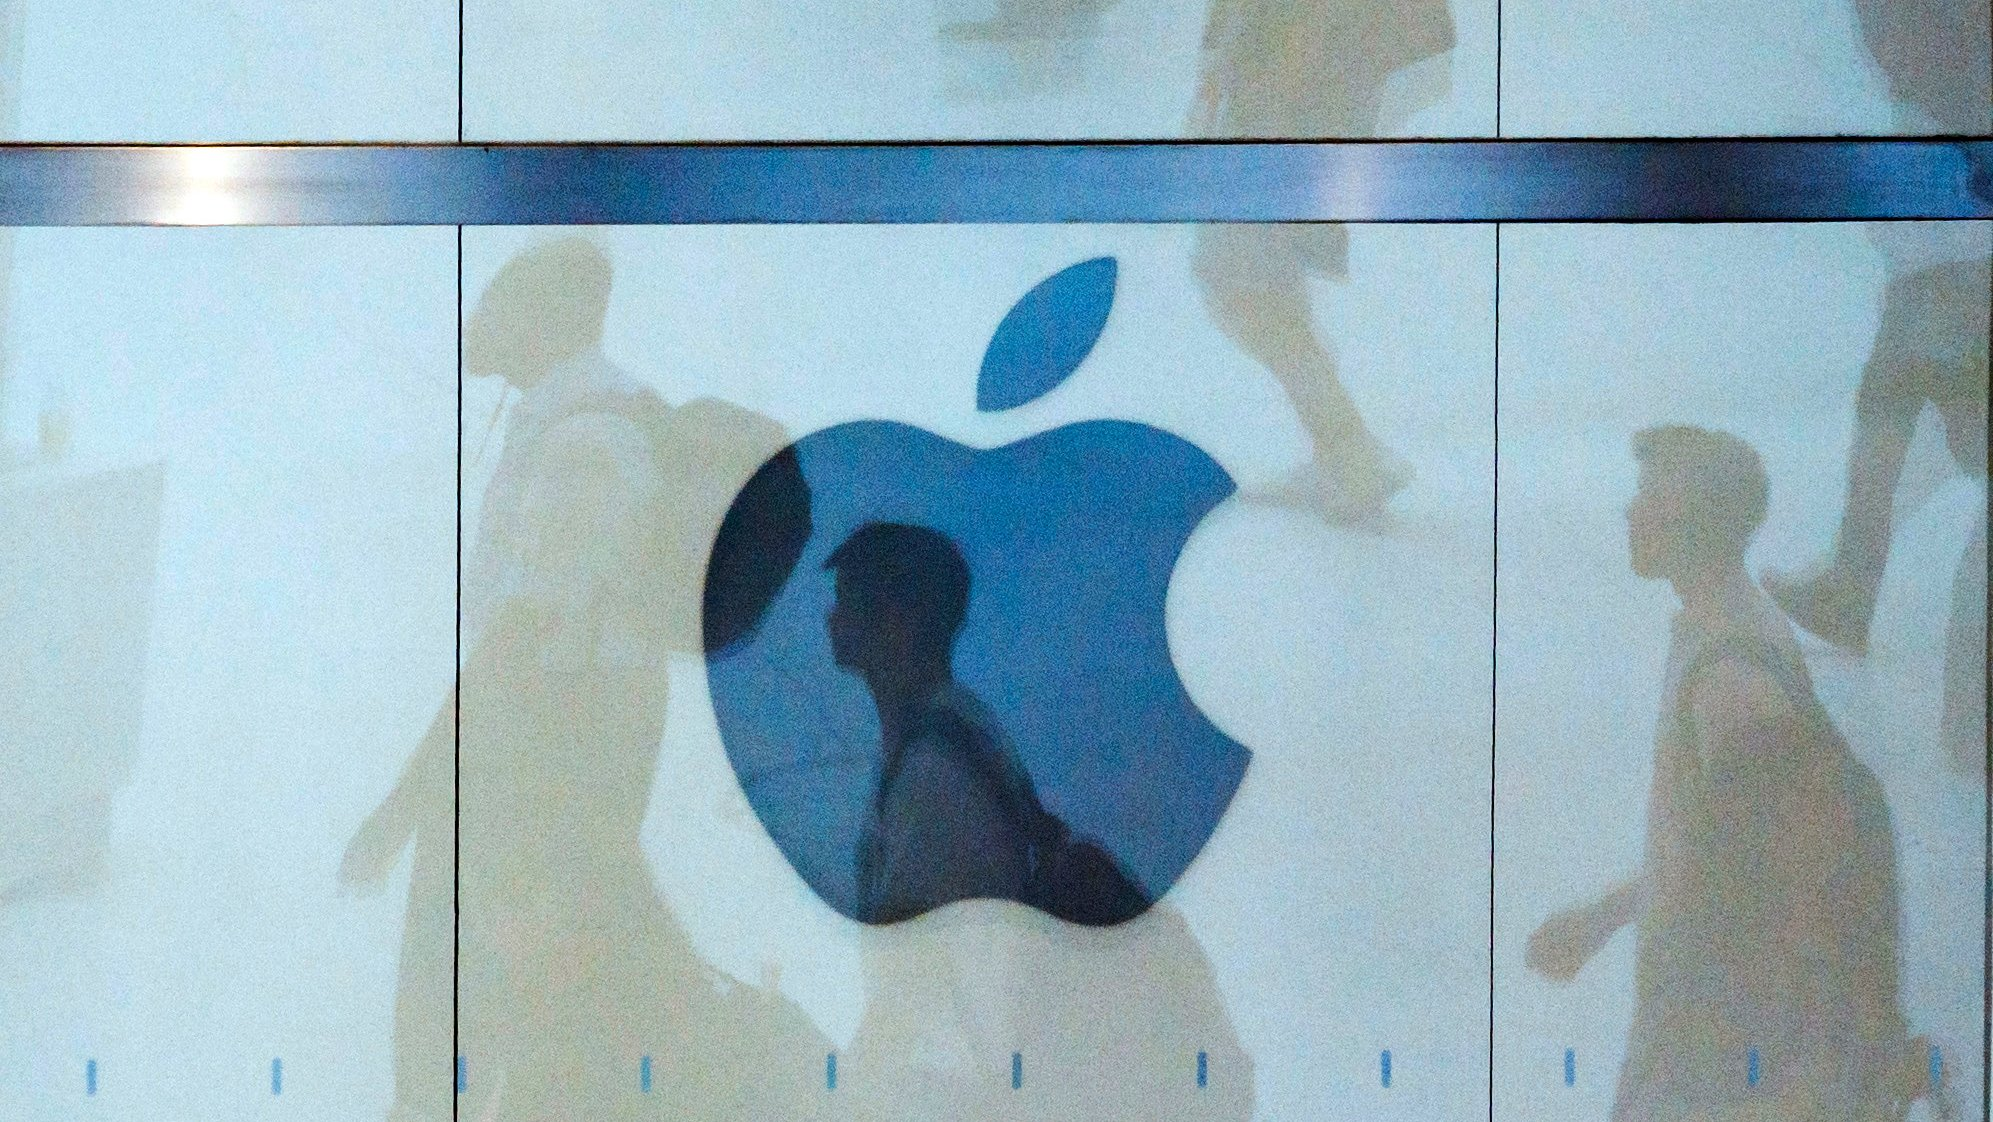 epa08967897 (FILE) - People walk past an Apple logo at an Apple store in New York, New York, USA, 01 August 2018 (reissued 26 January 2021). Apple is to release their financial year 2021 1st quarter results on 27 January 2021.  EPA/JUSTIN LANE *** Local Caption *** 56215821